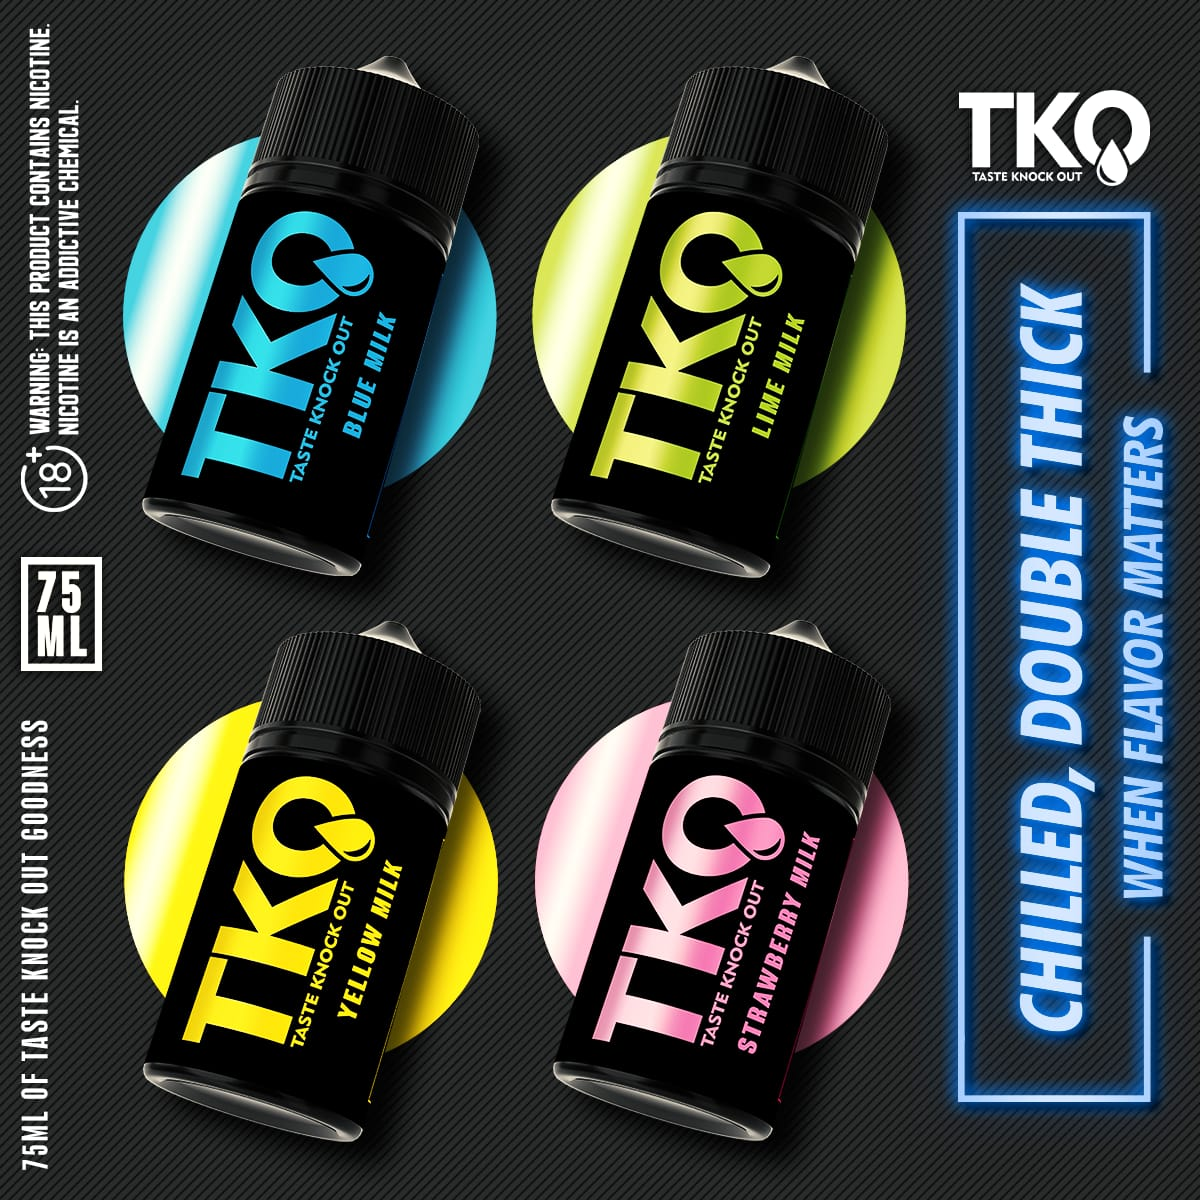 TKO E-Liquid - Strawberry Milk Special Edition 75ml